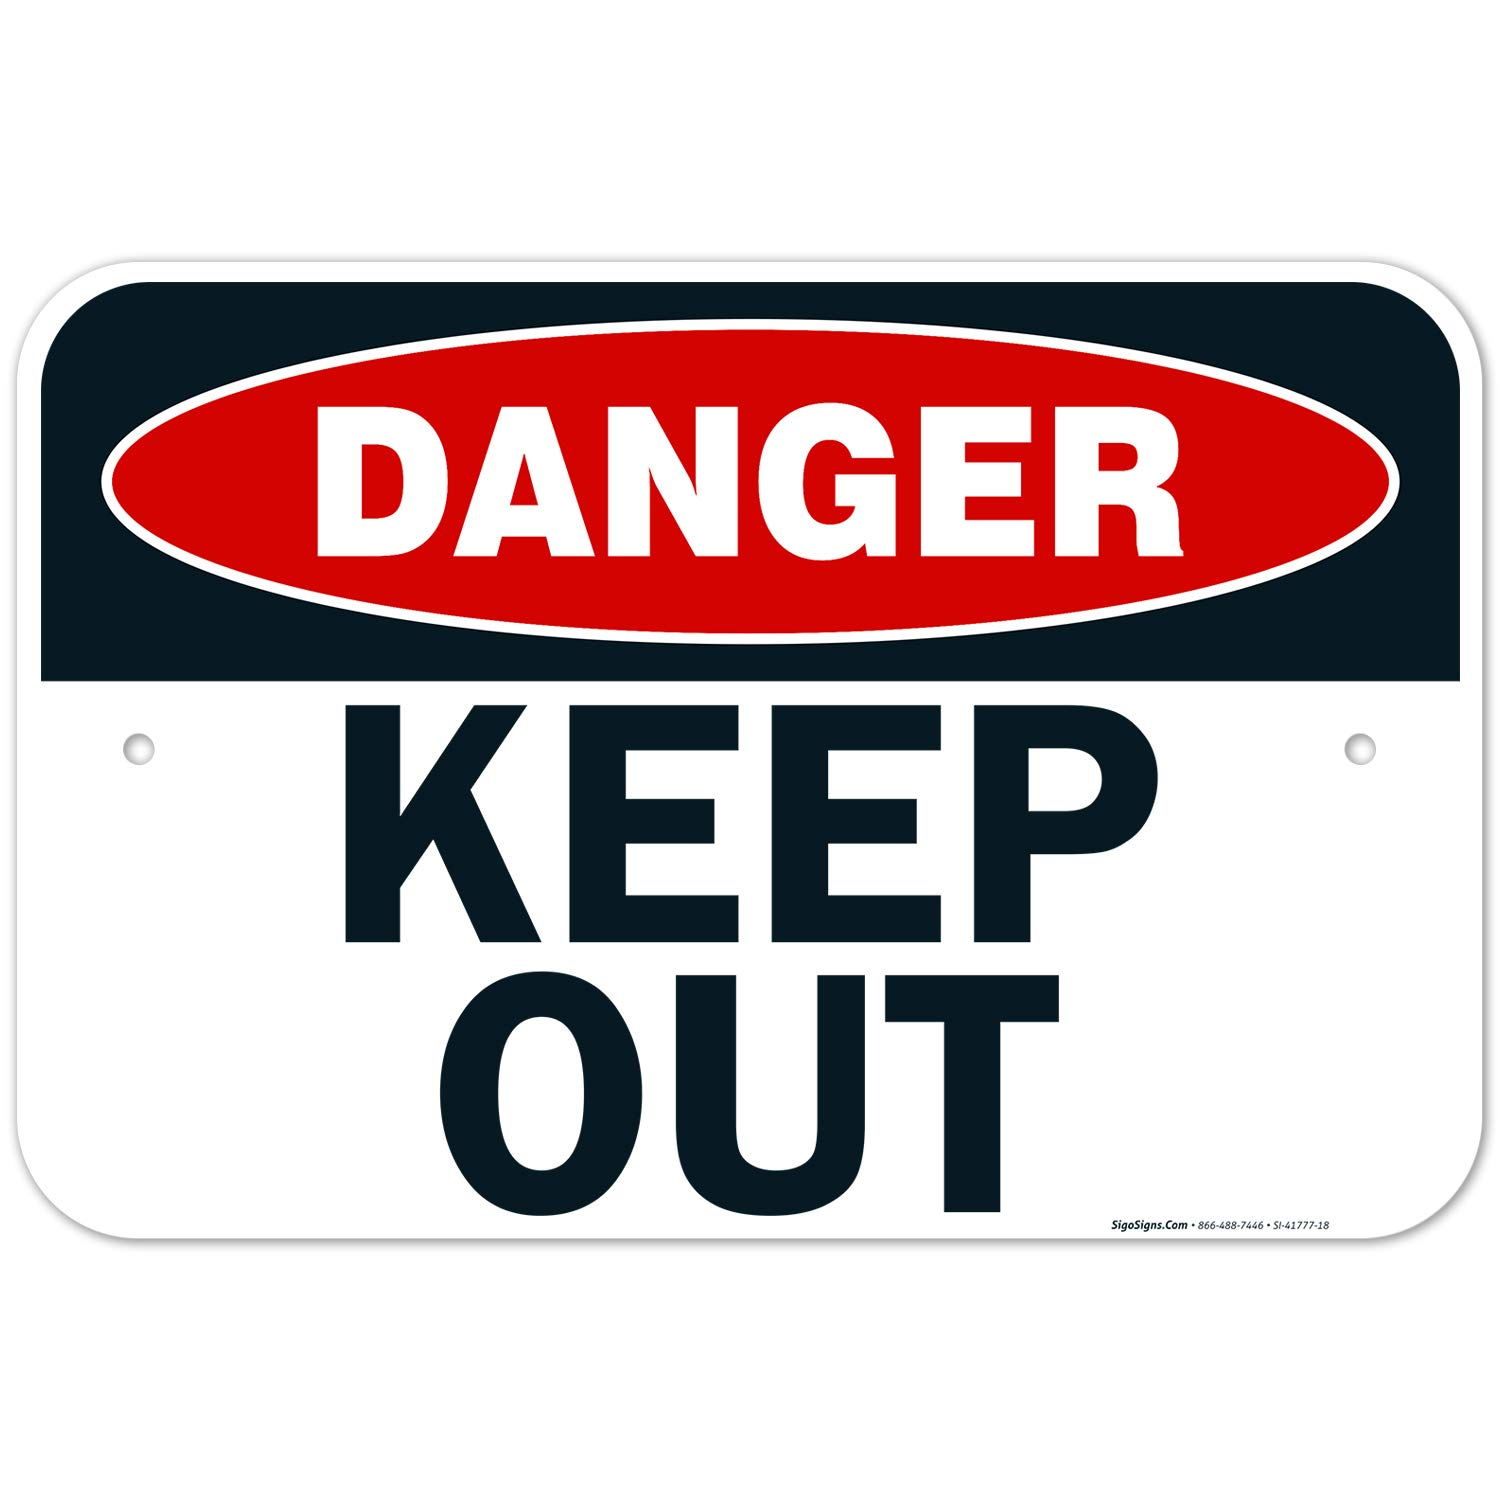 Danger: Keep Out Sign,Large 12x18 Rust Free .63 Commercial Grade Aluminum, UV Protected, Long Lasting Weather/Fade Resistant, Easy Mounting, Indoor/Outdoor Use, Made in USA